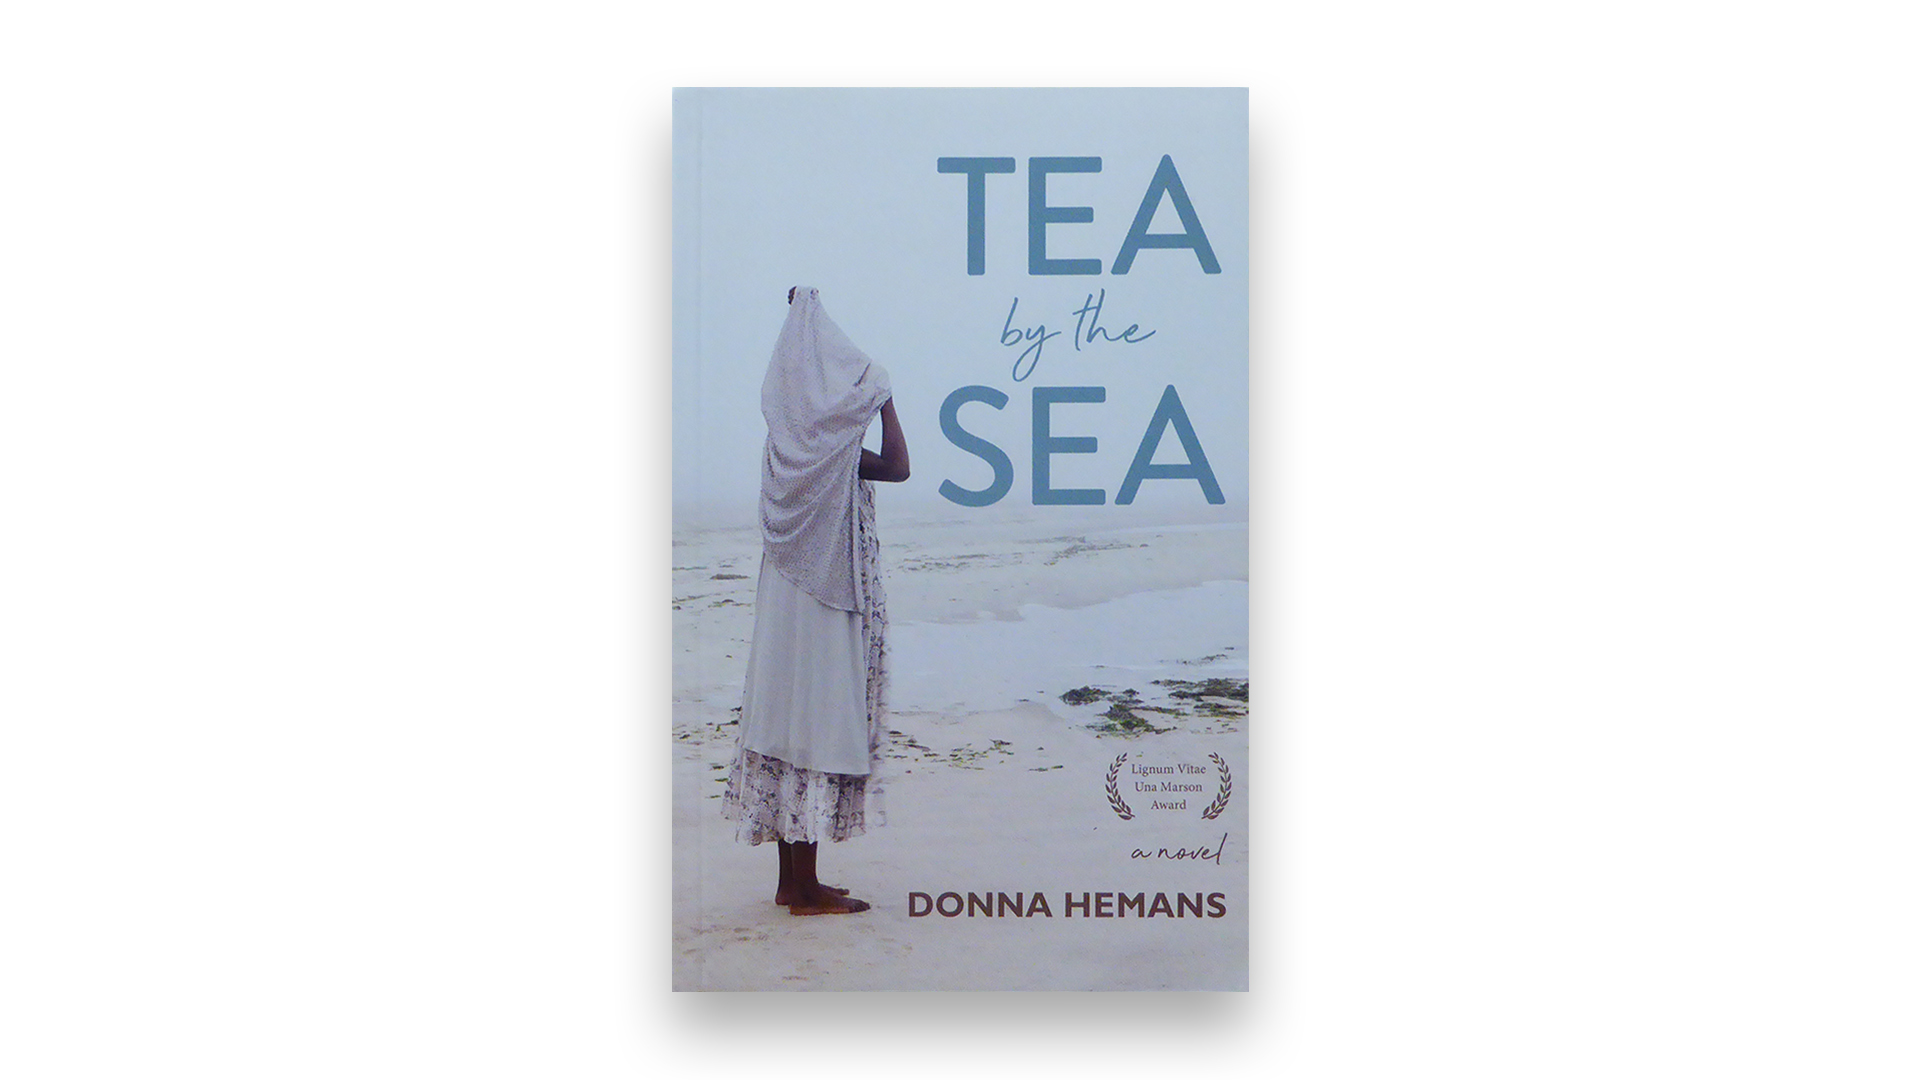 https://redhenpress.org/products/tea-by-the-sea-by-donna-hemans